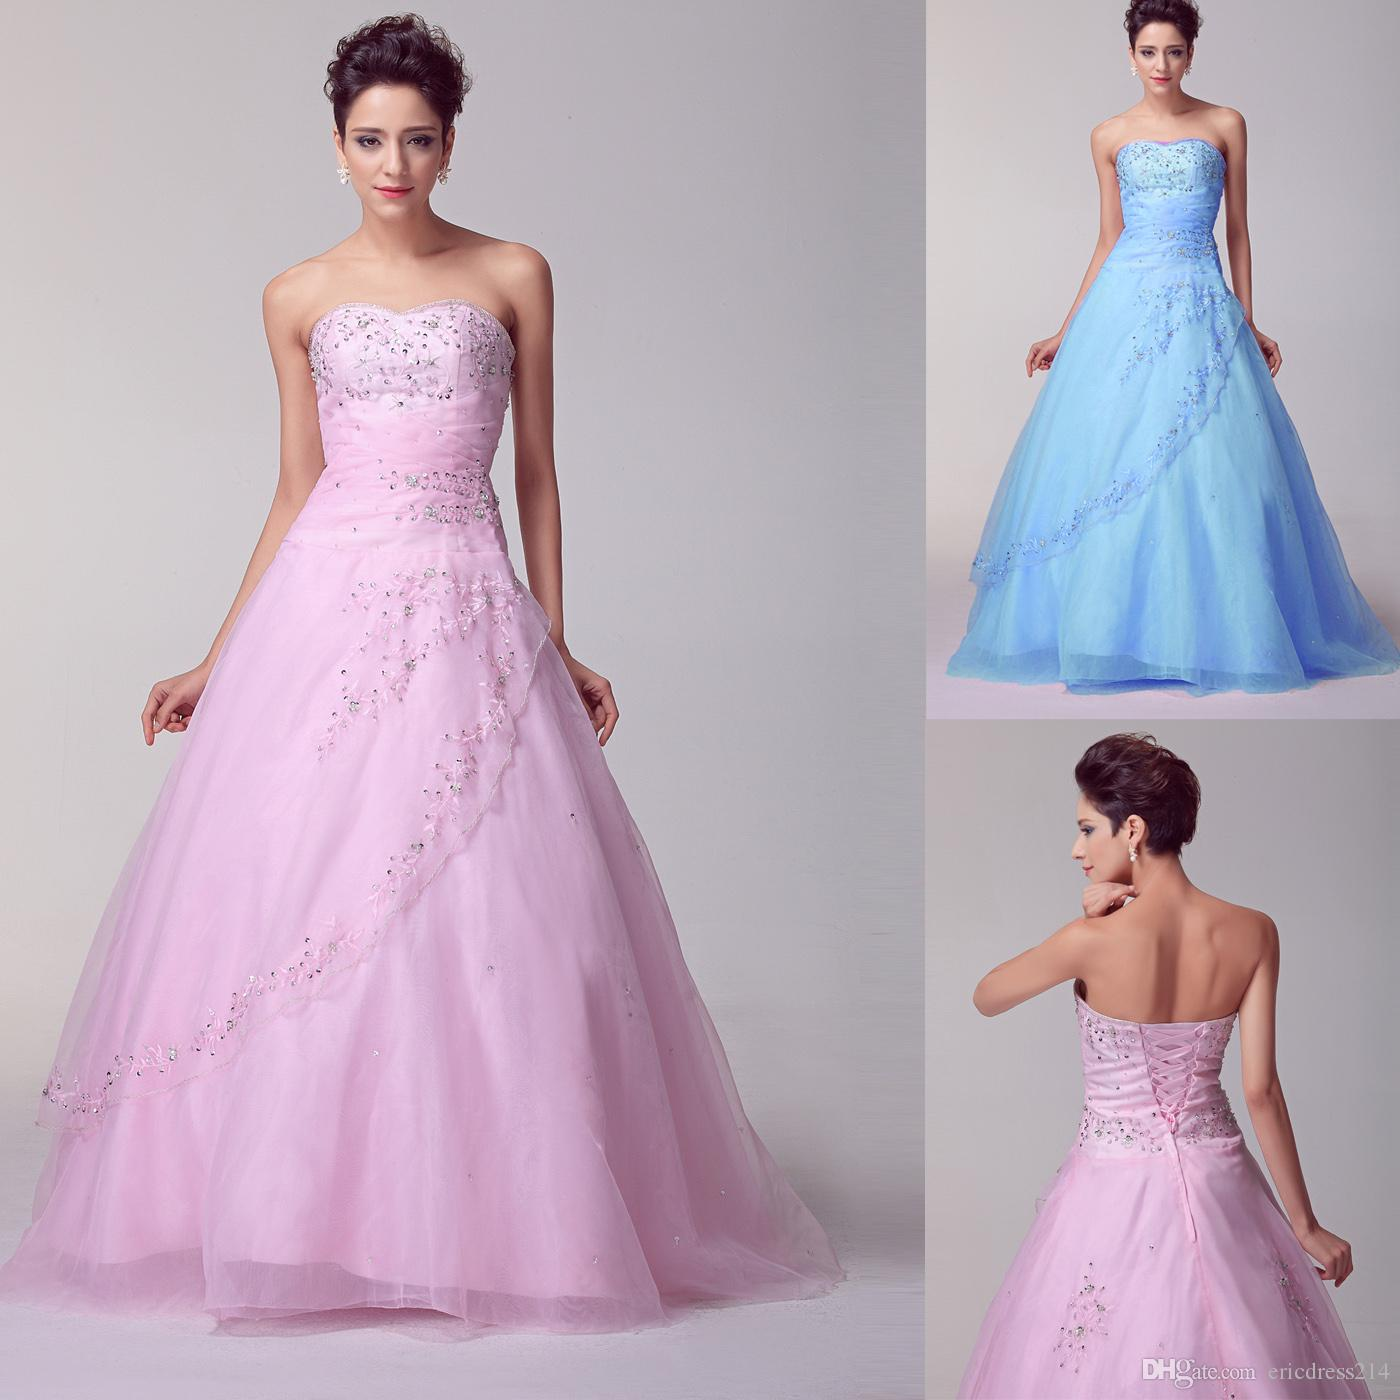 Fashion Pink Quinceanera Dresses Blue White Ball Gowns Beaded ...